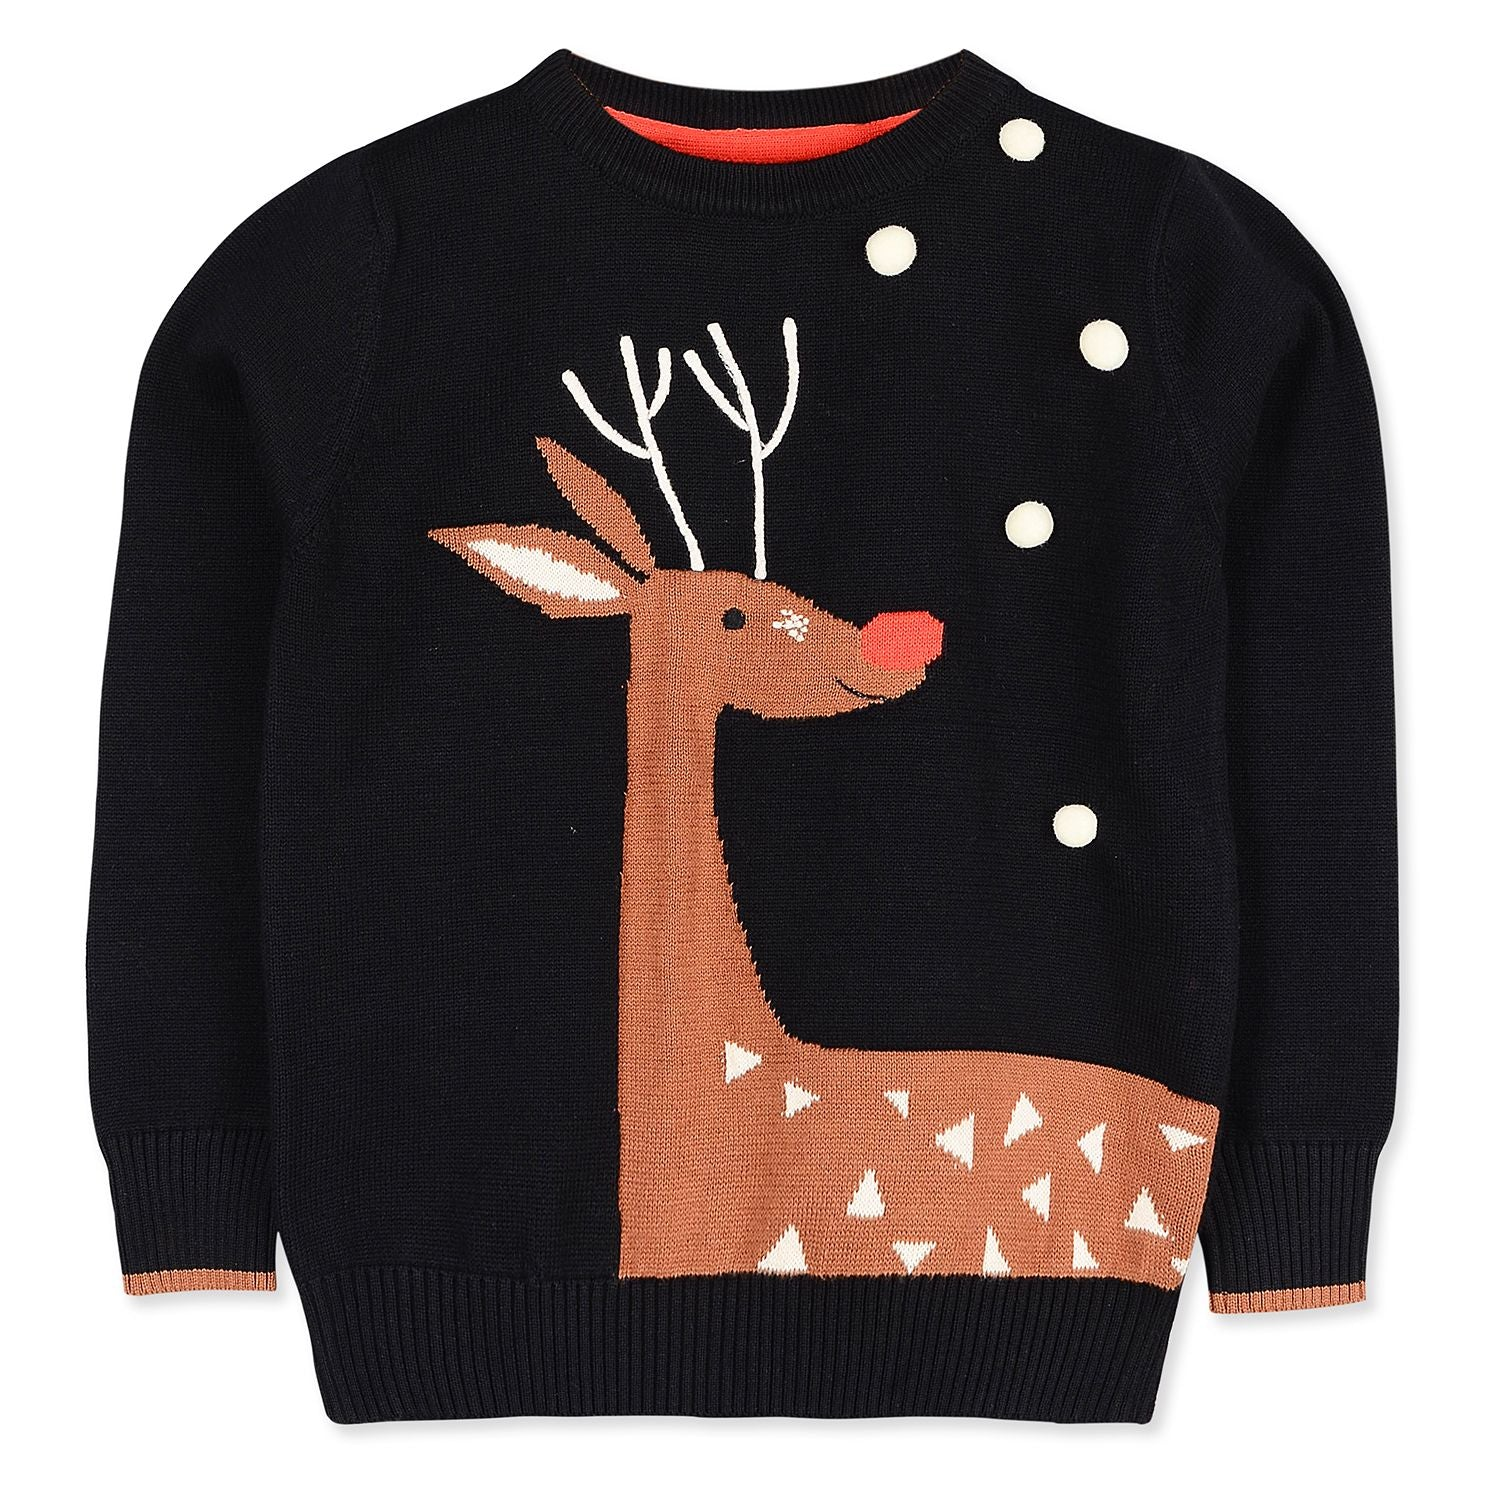 Cosy Holiday Sweater for kids